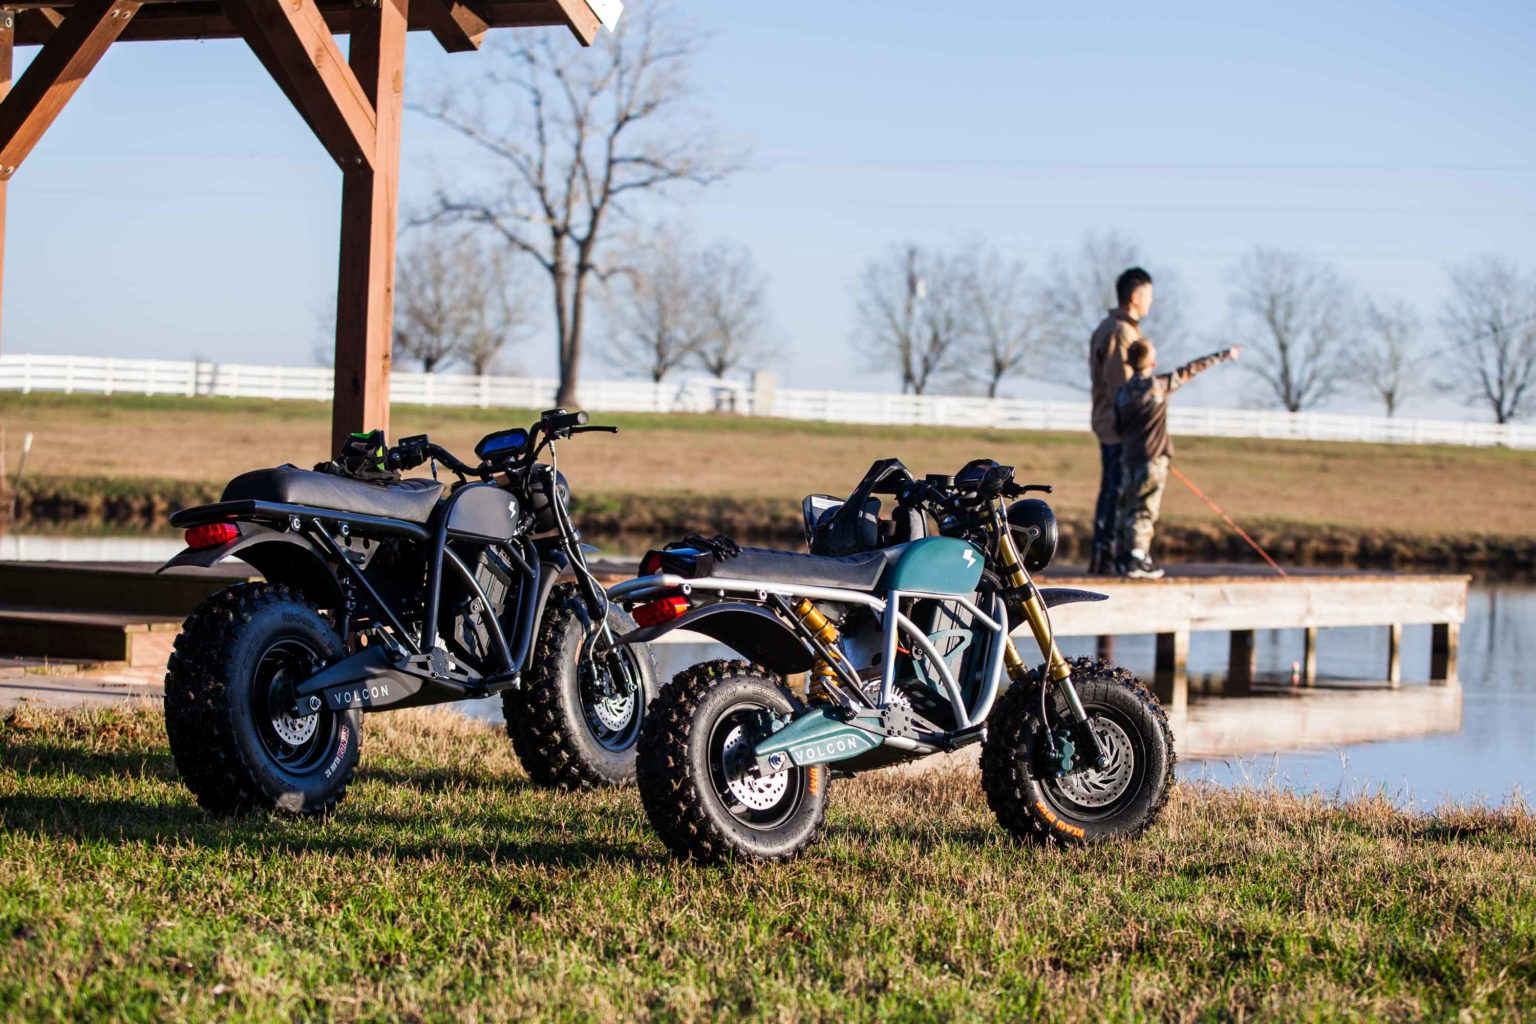 A side view of the Grunt and the Runt available from Volcon Powersports